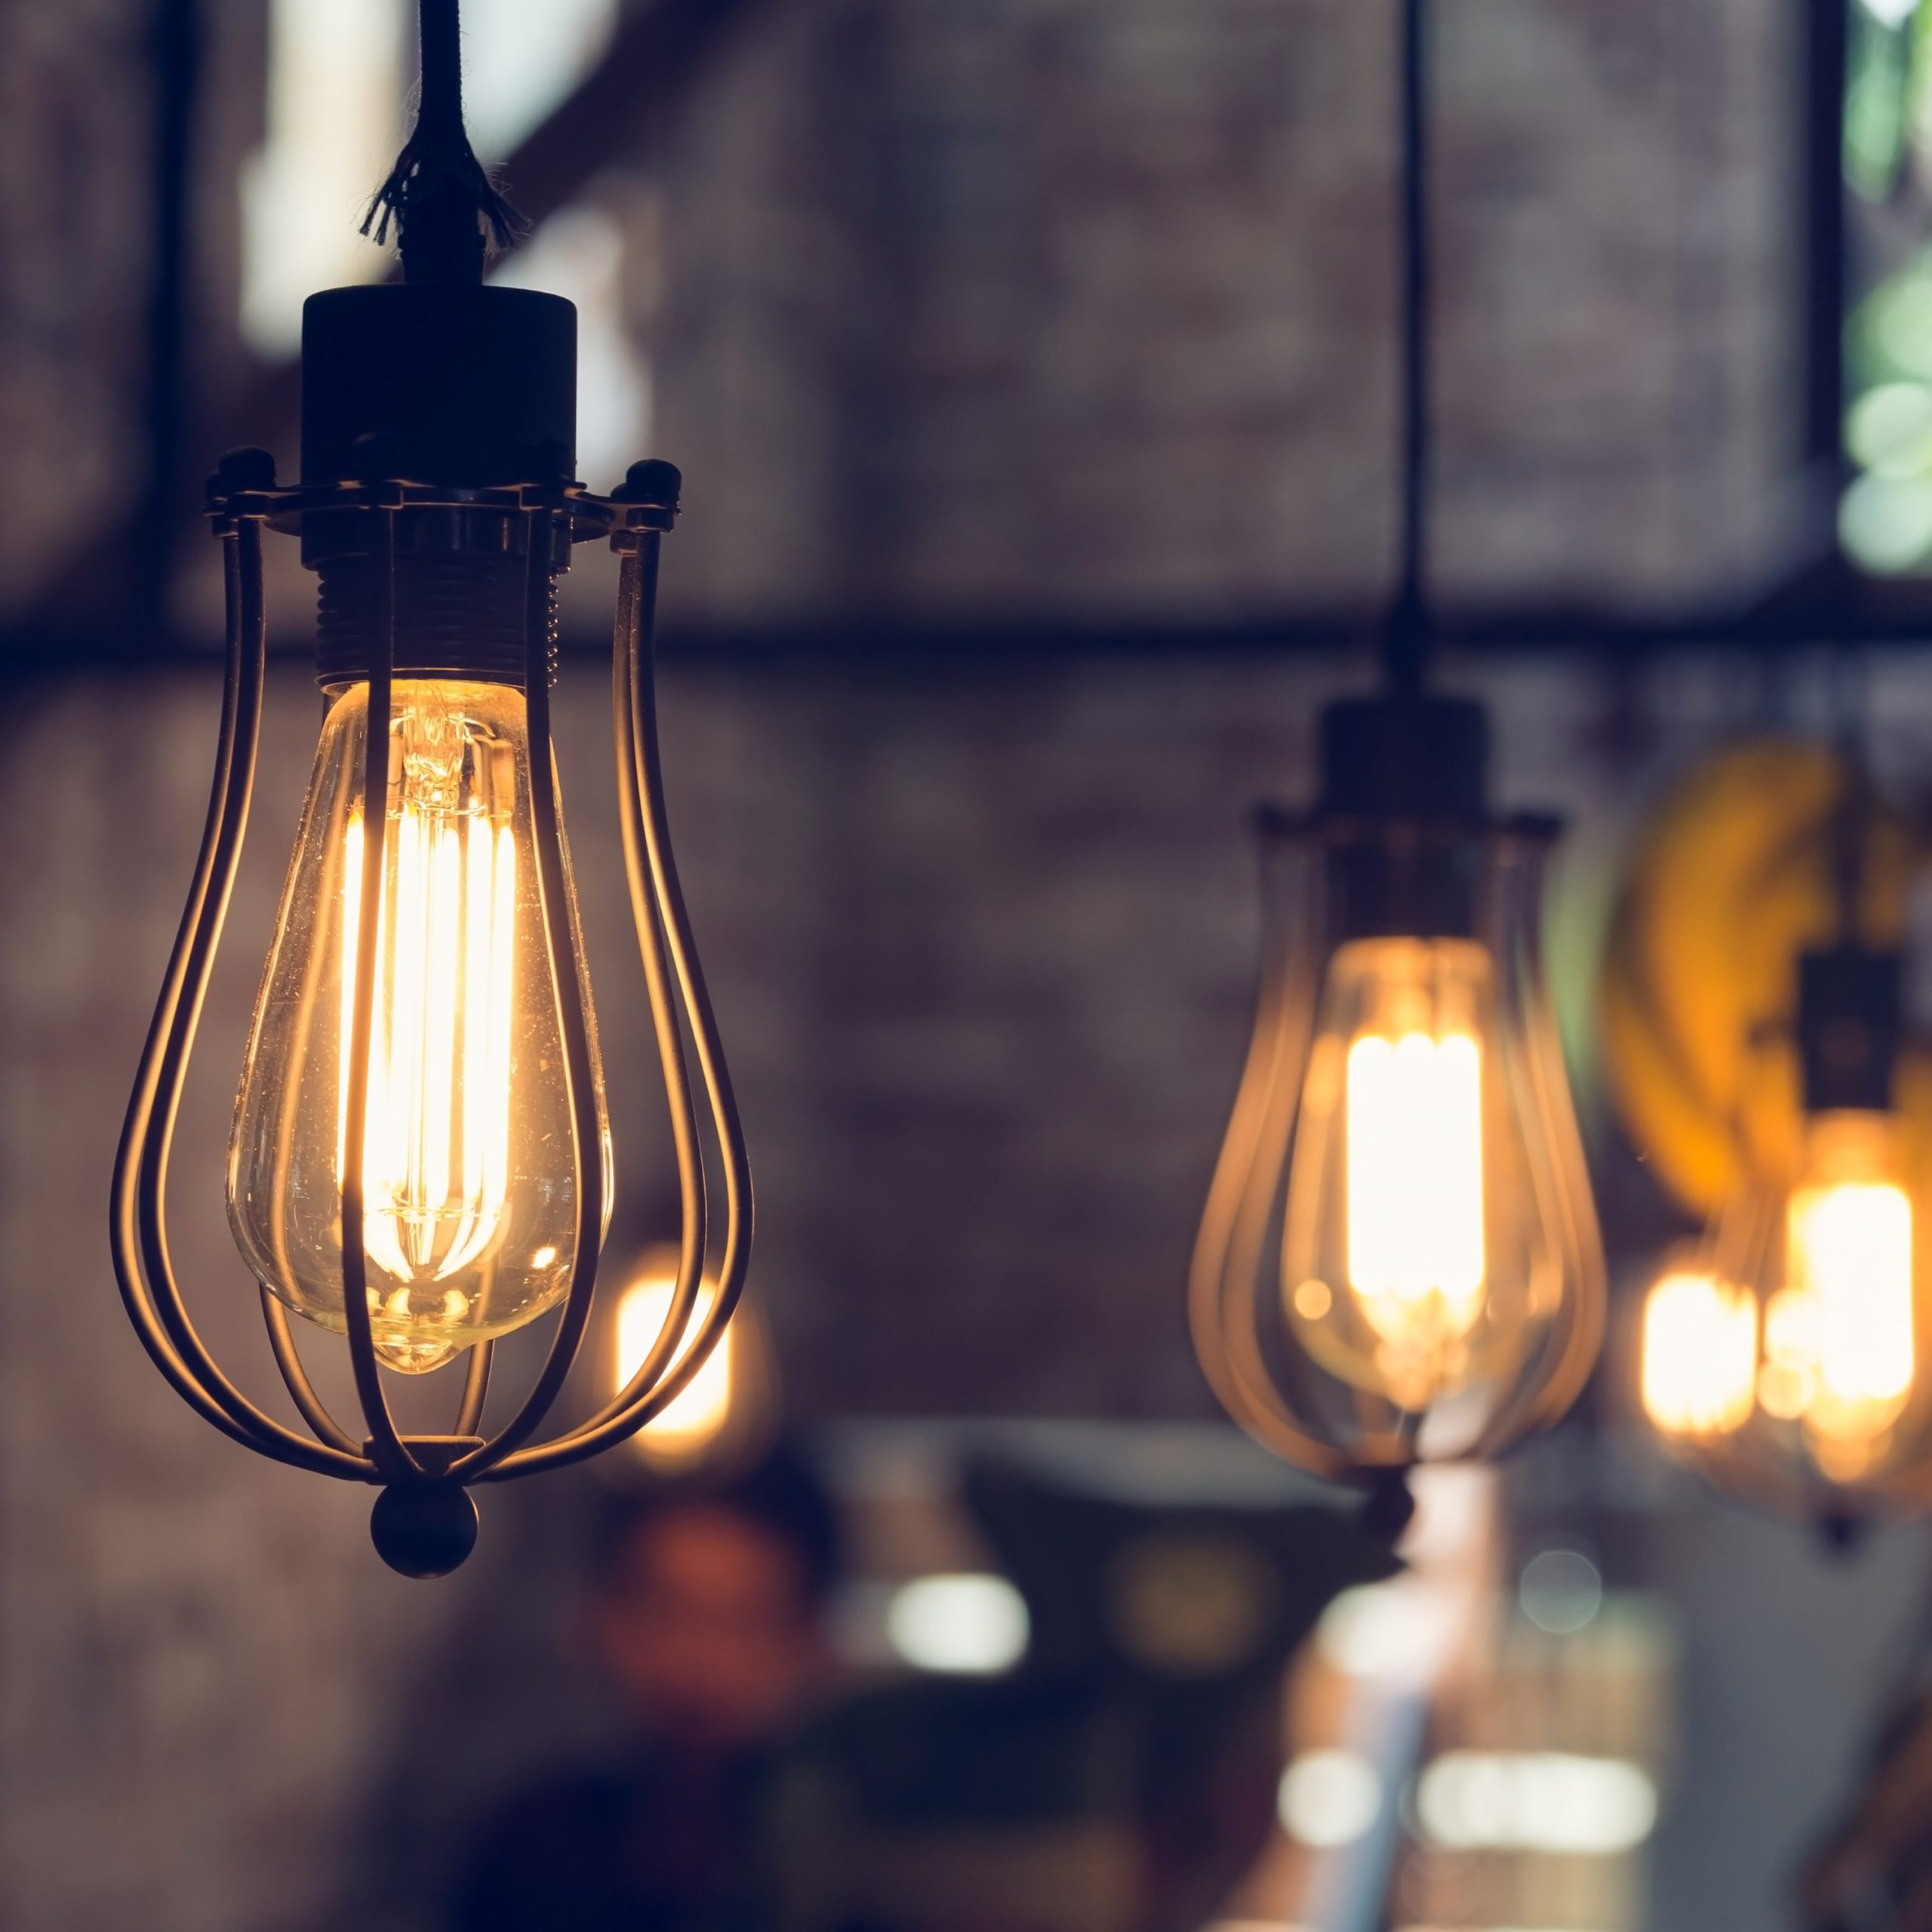 industrial lighting fixtures hanging in a brick kitchen covered by a premium home warranty plan